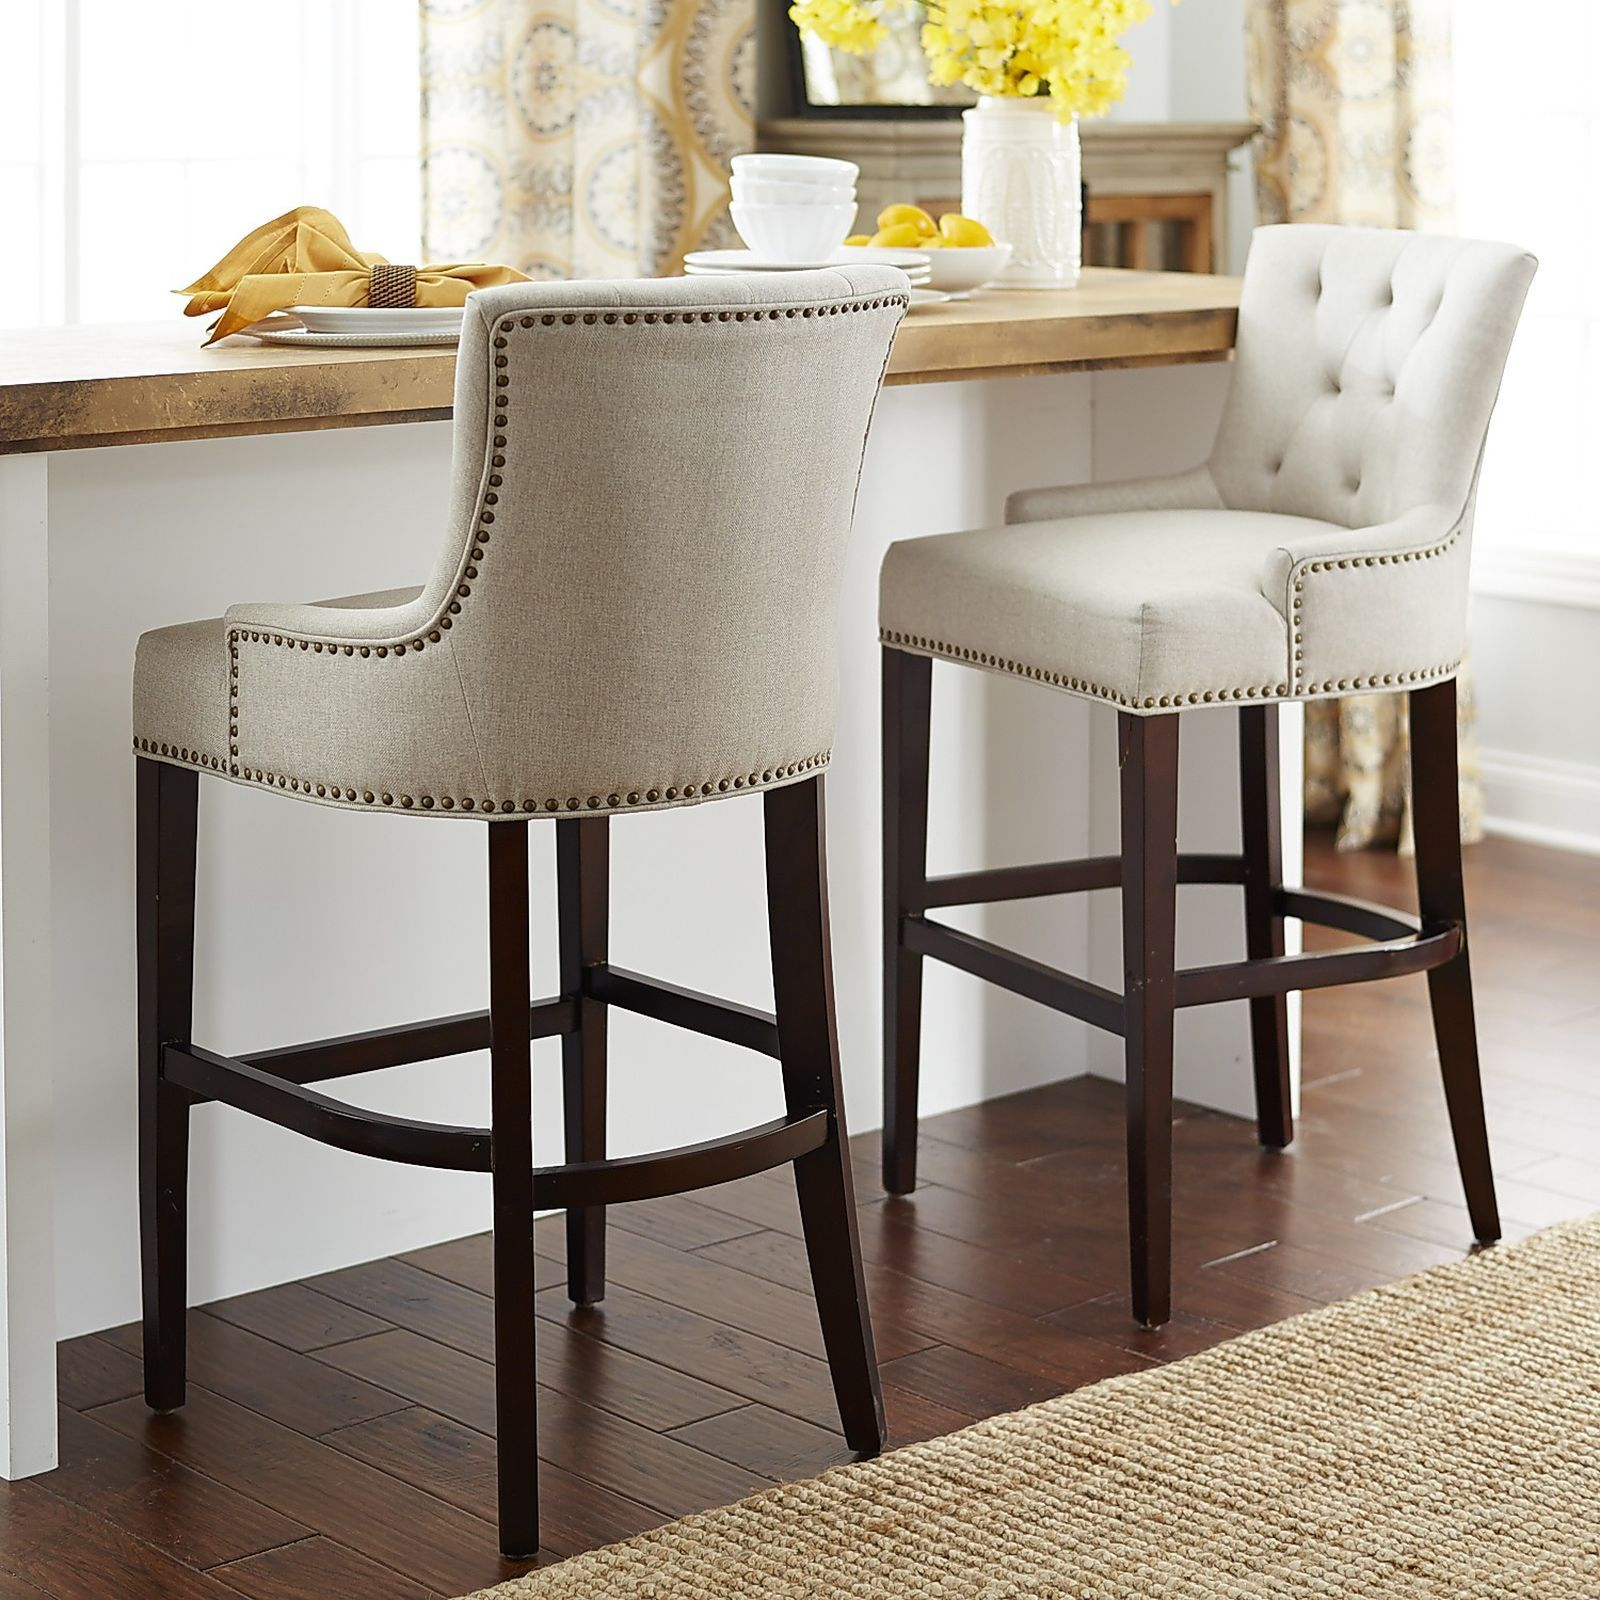 Ava Flax Counter & Bar Stool